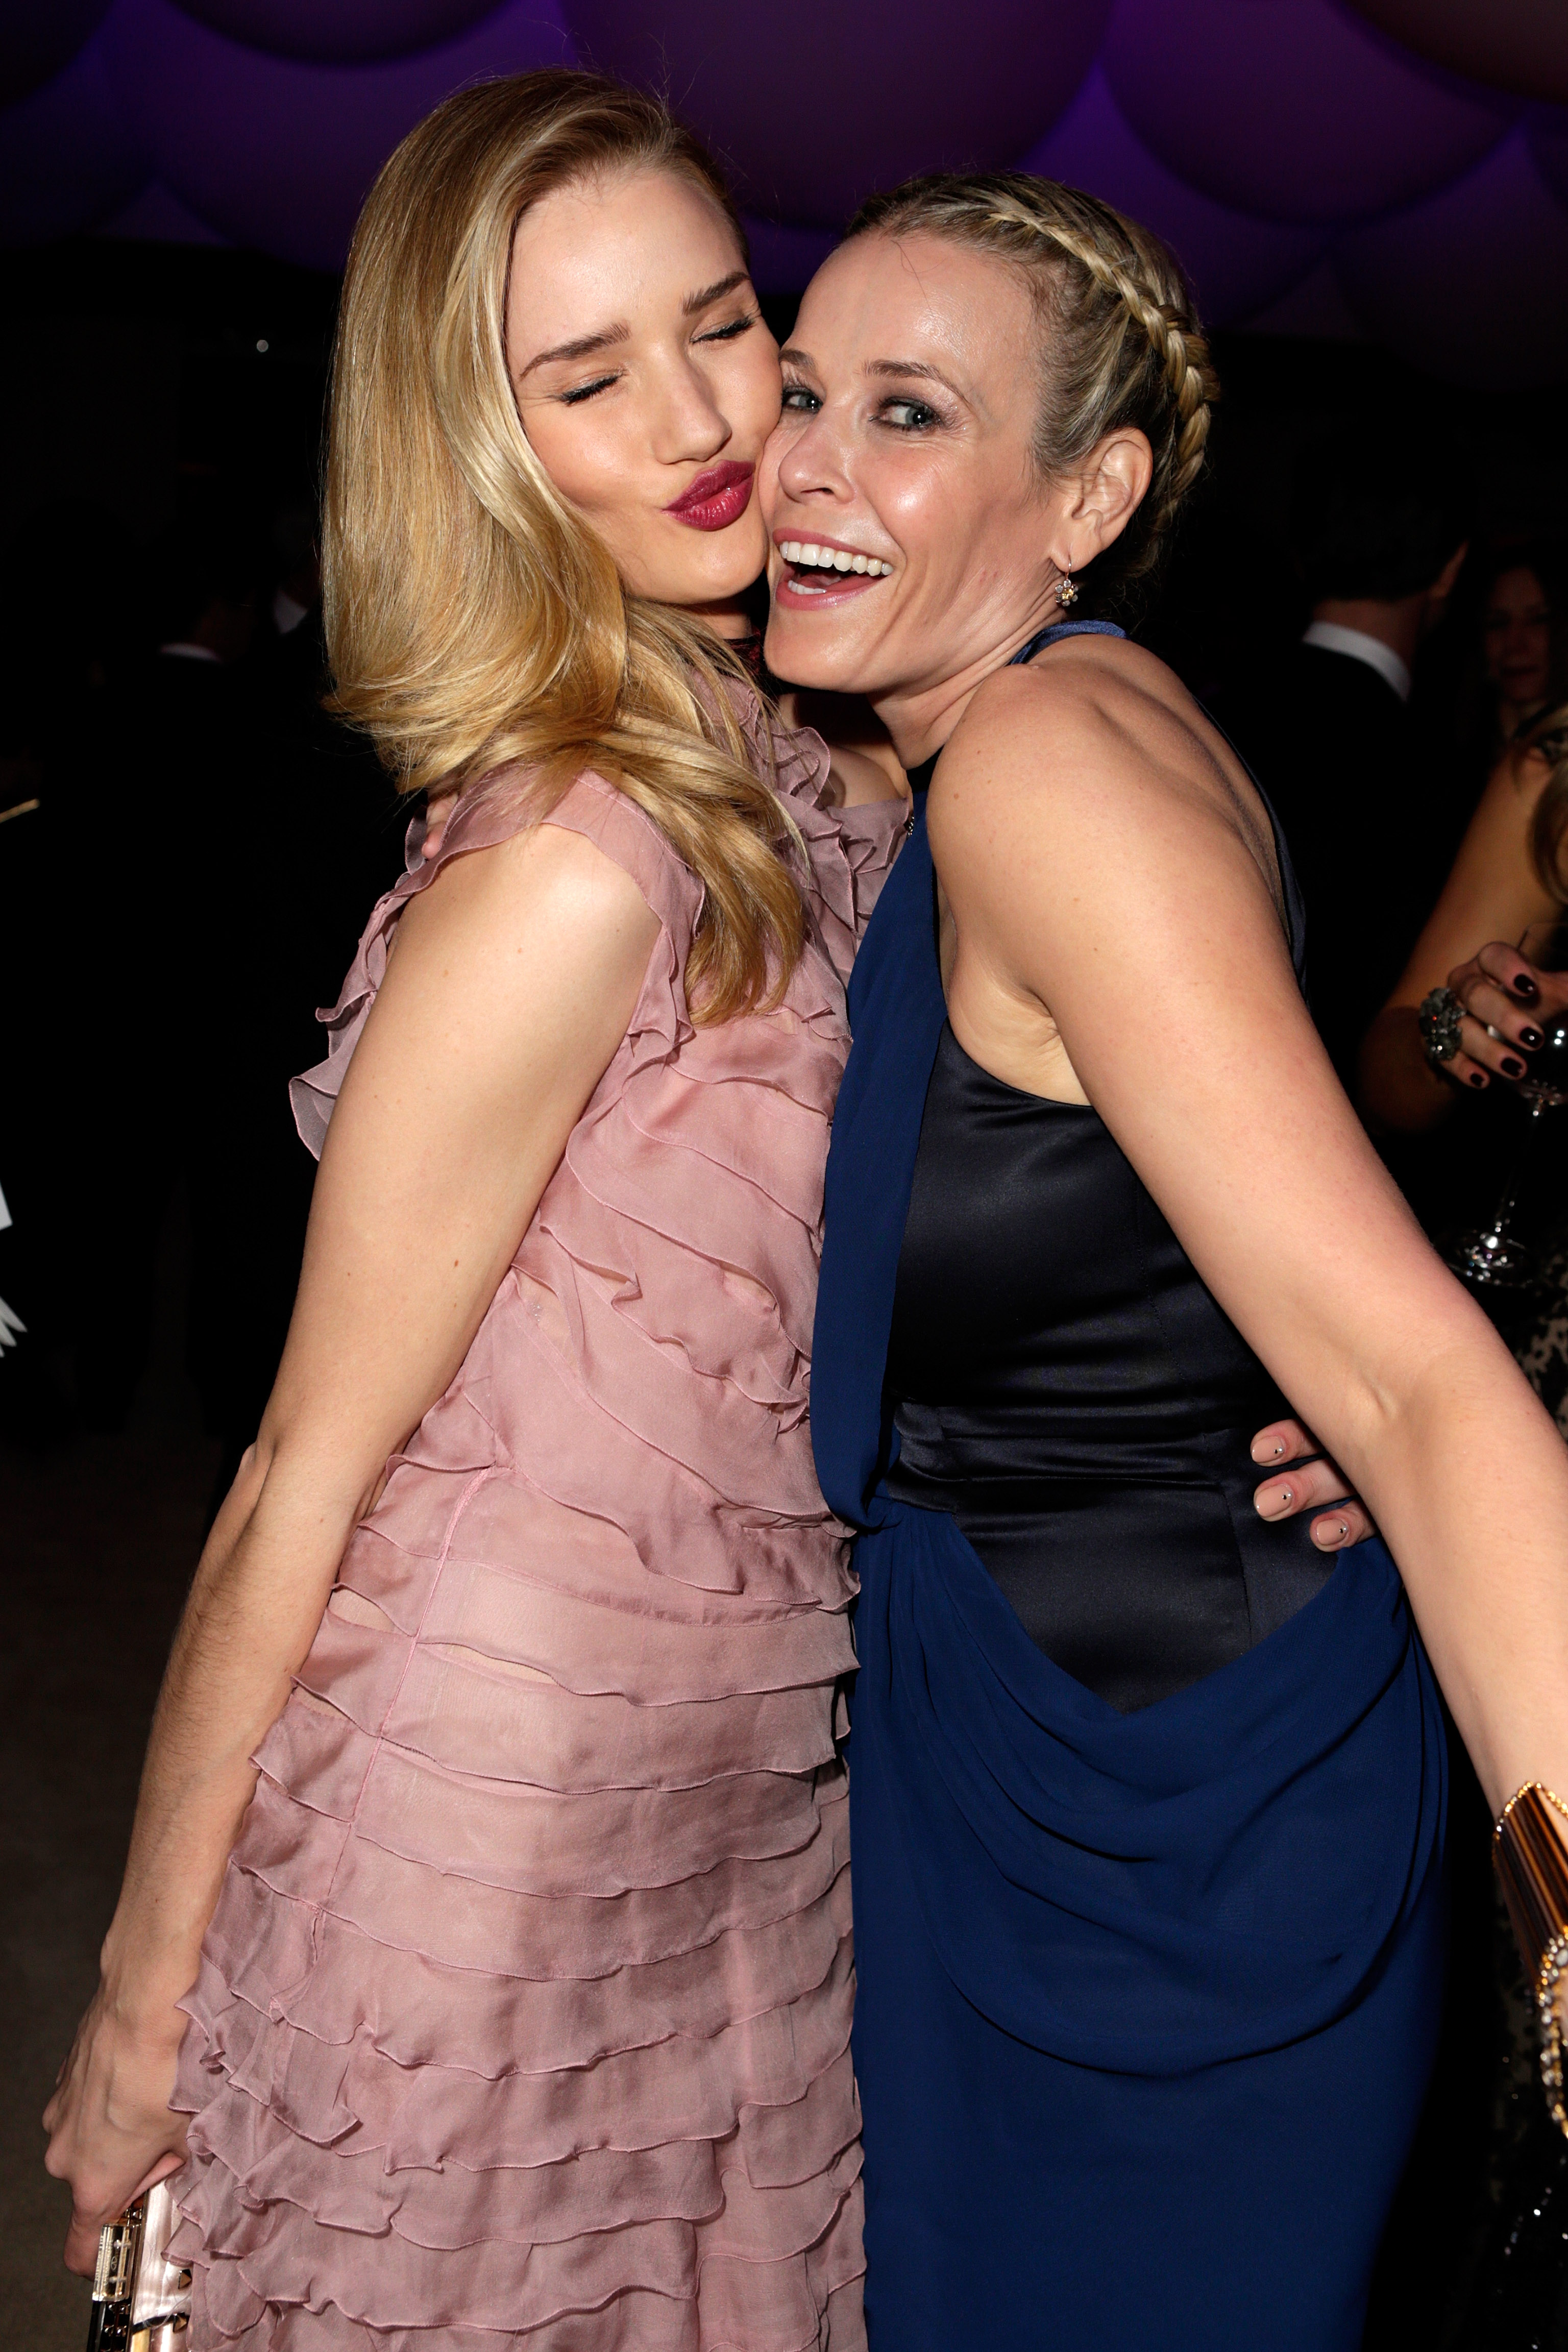 Rosie Huntington-Whiteley planted a kiss on Chelsea Handler at the Vanity Fair Oscar party on Sunday night.